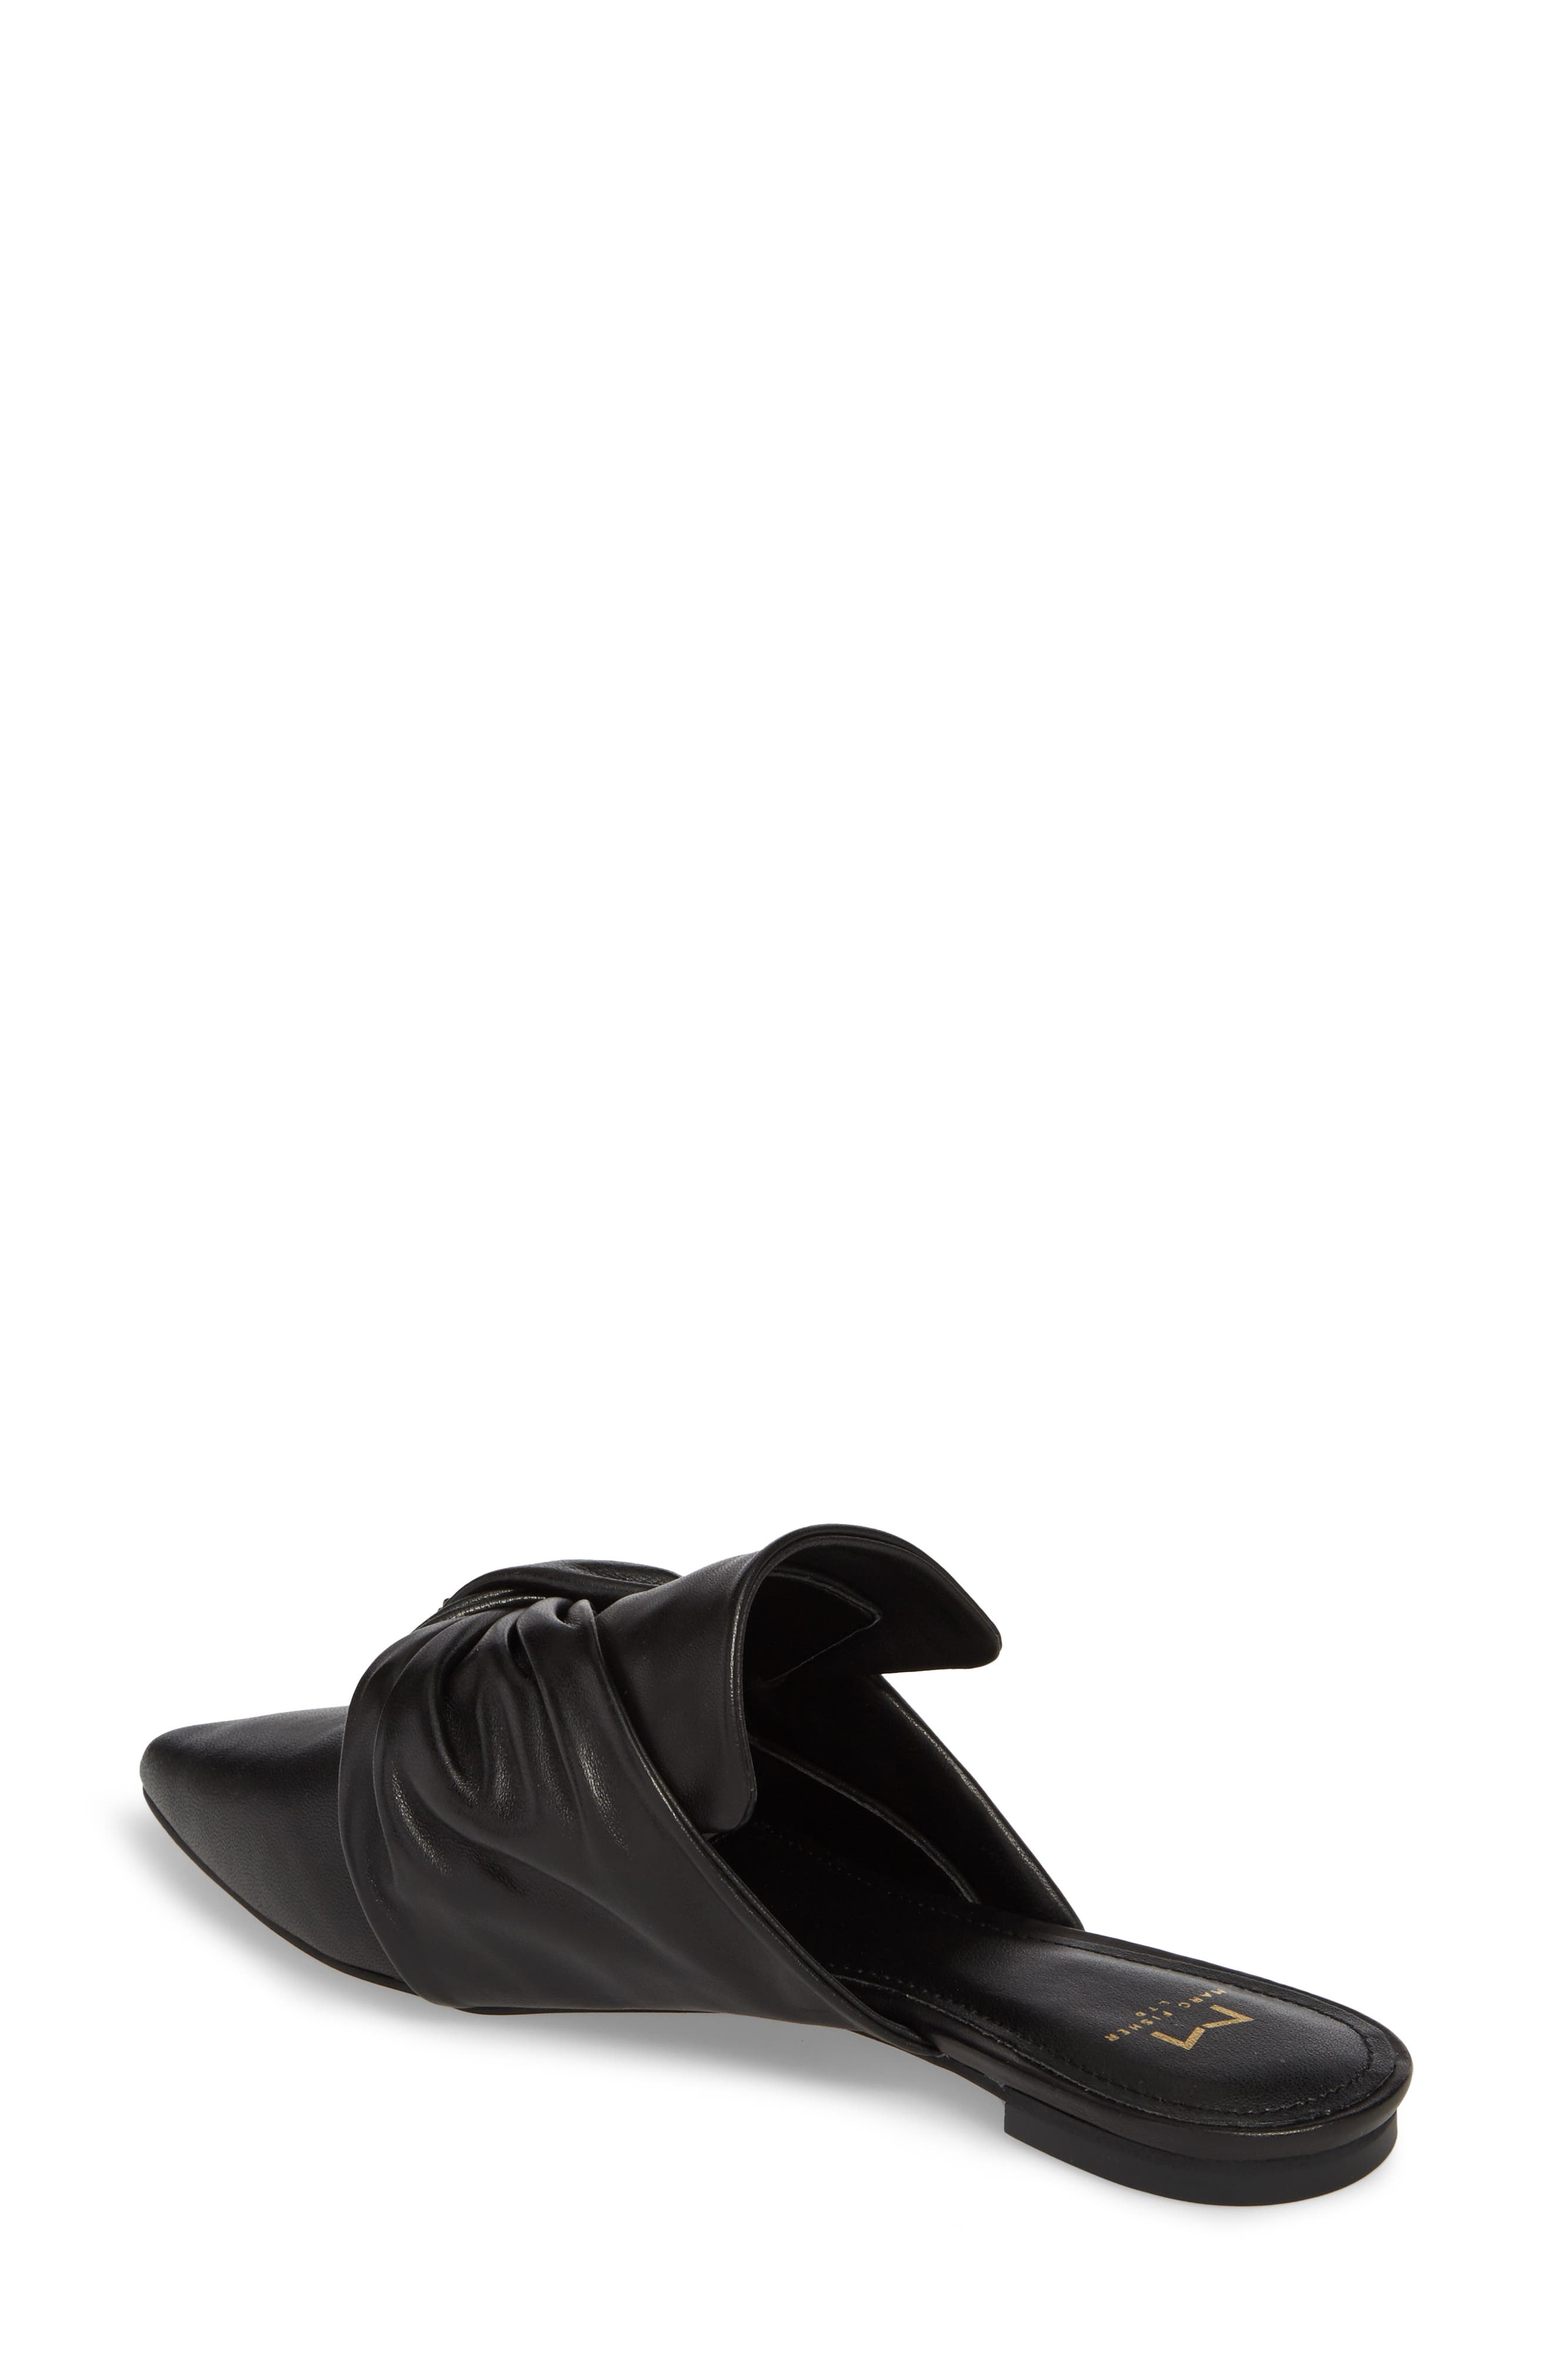 Shafi Pointy Toe Slide,                             Alternate thumbnail 2, color,                             Black Leather